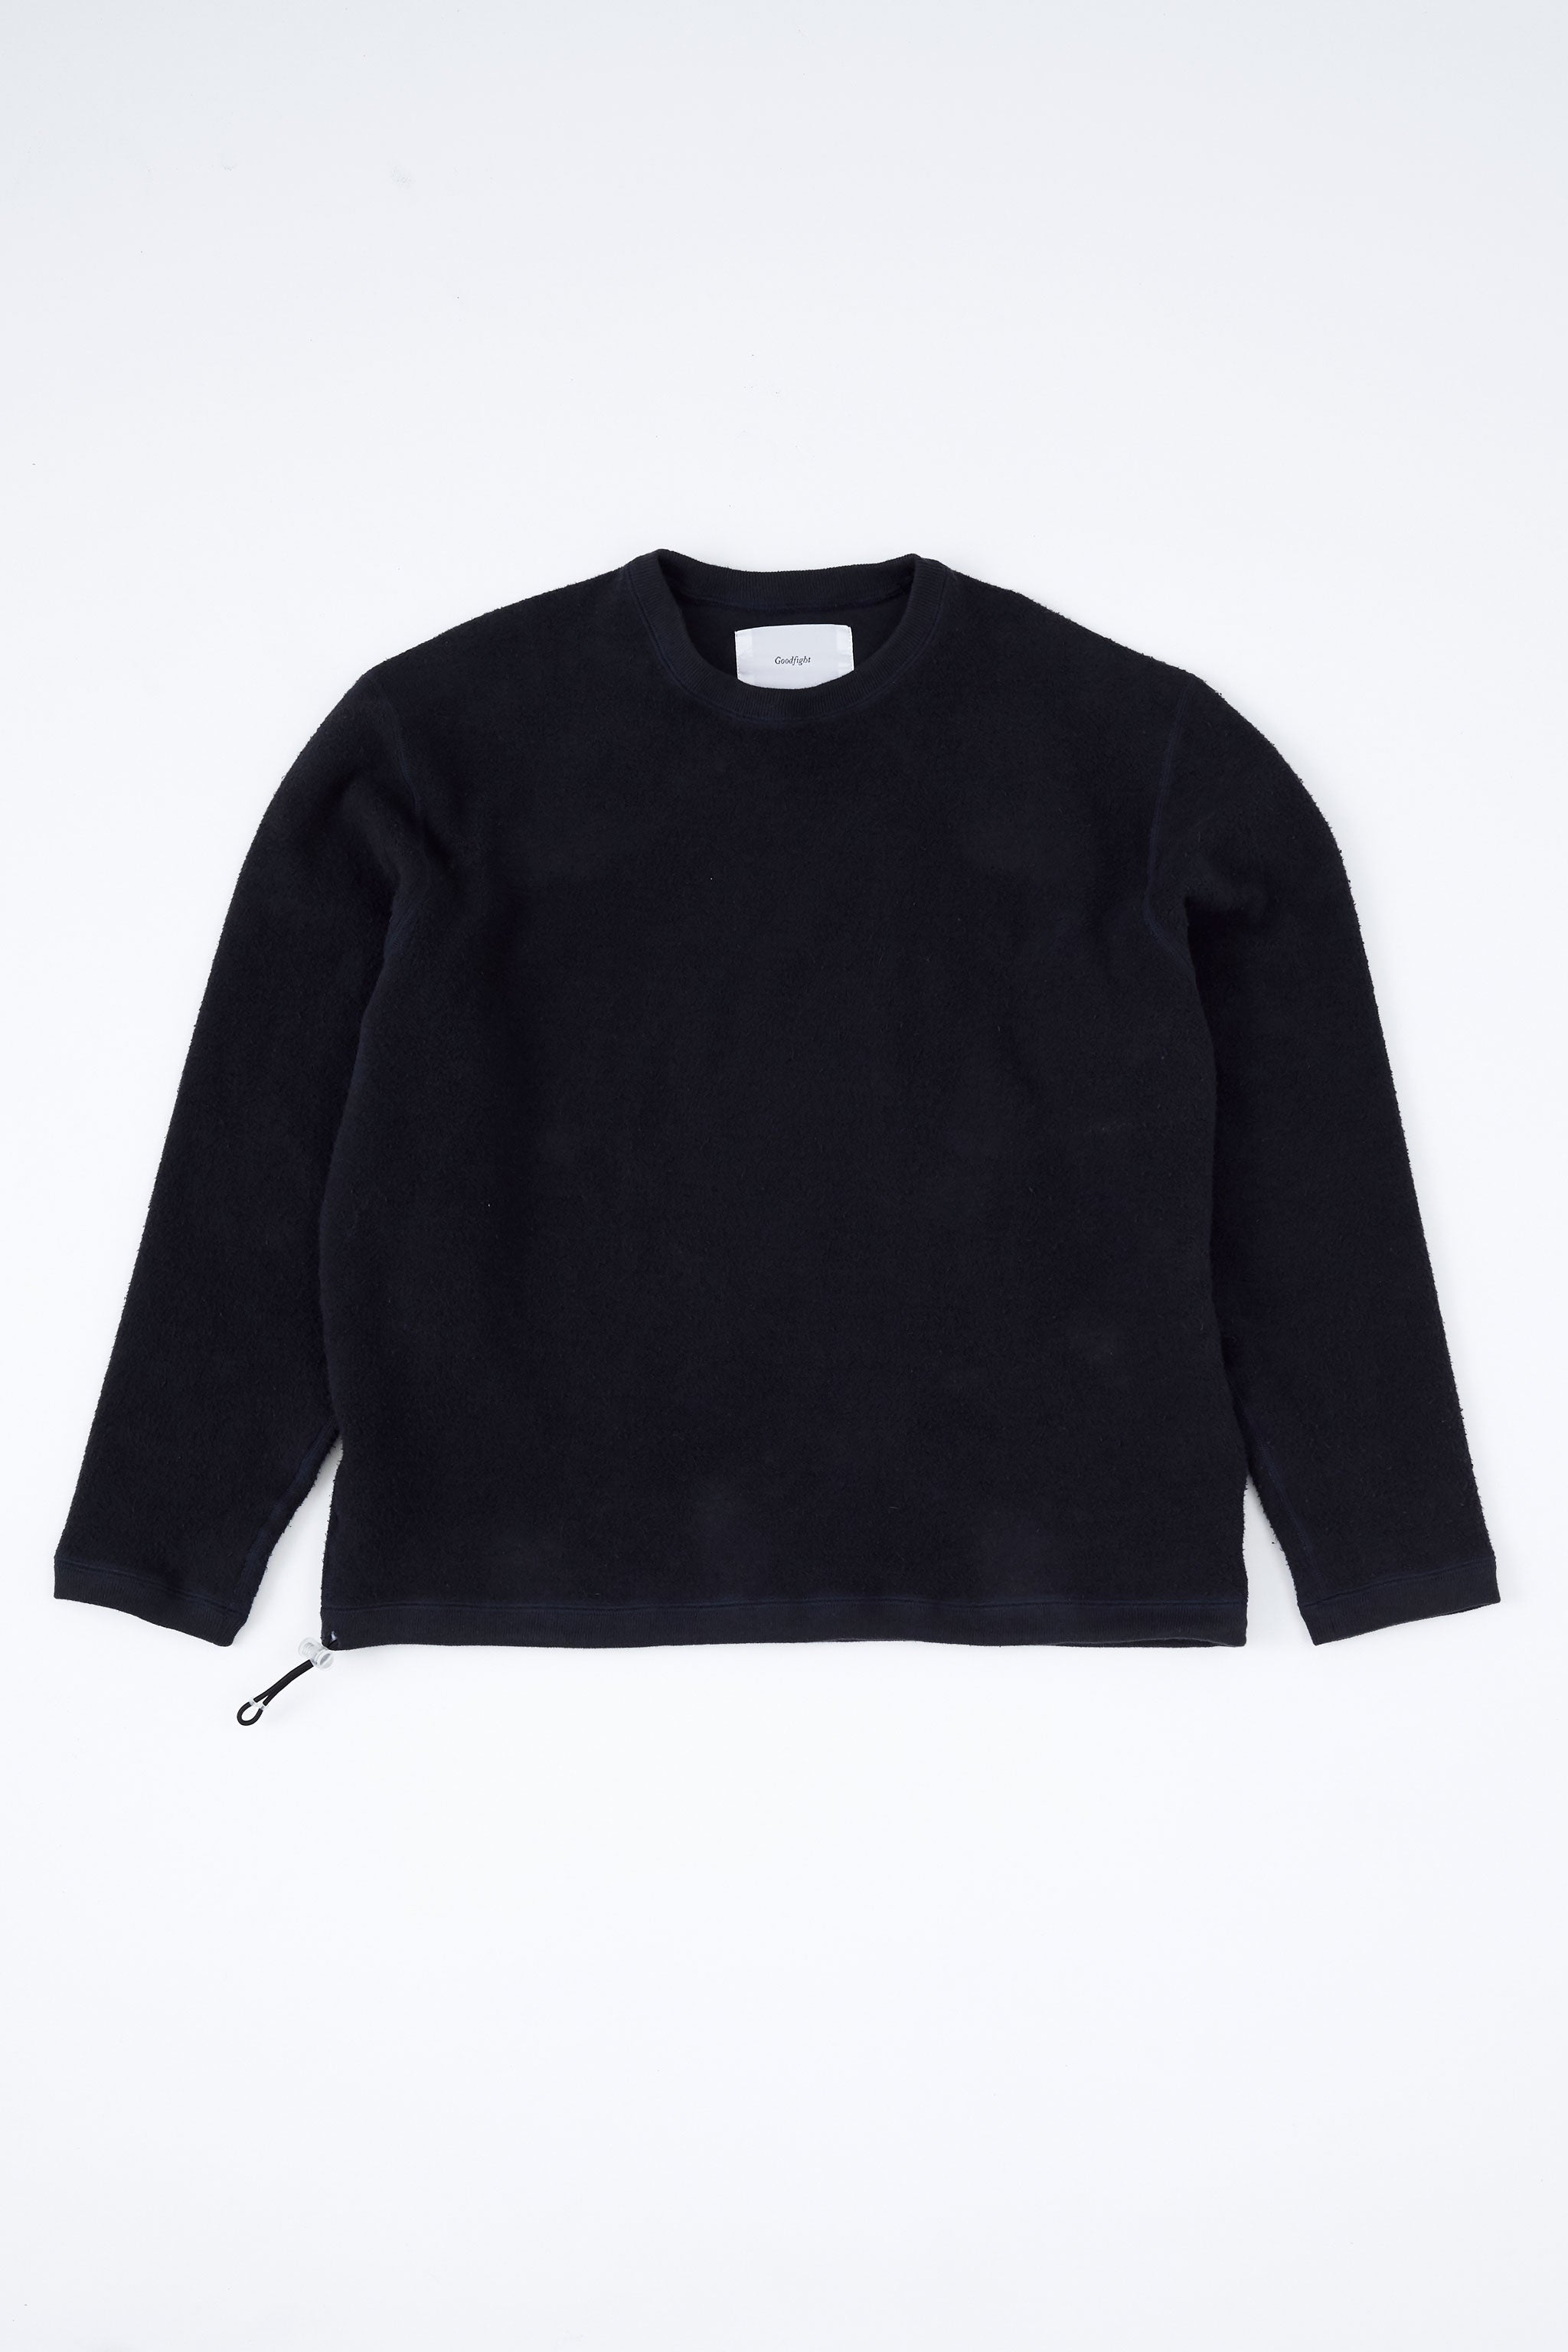 Sling Jumper Black